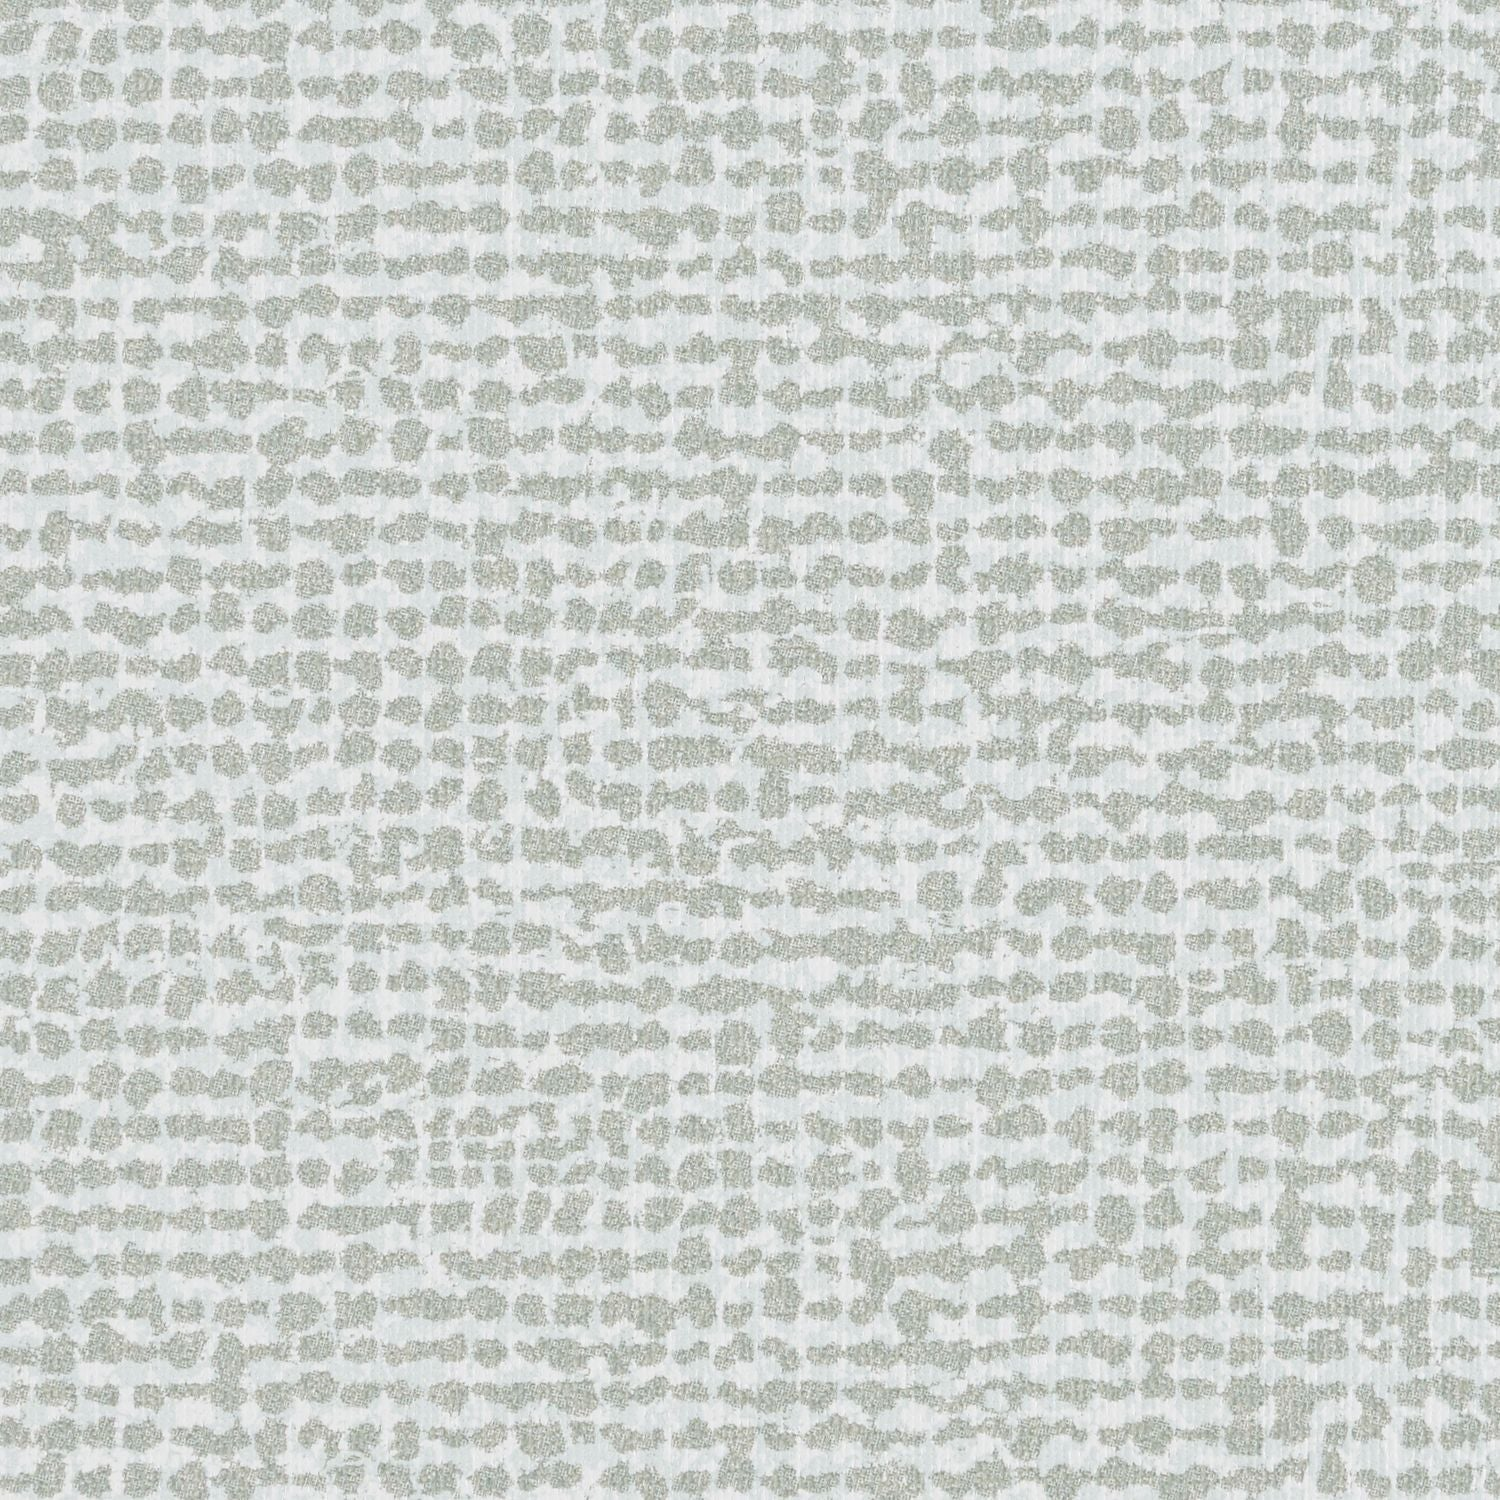 Meta Texture - Silver Lining - 4063 - 04